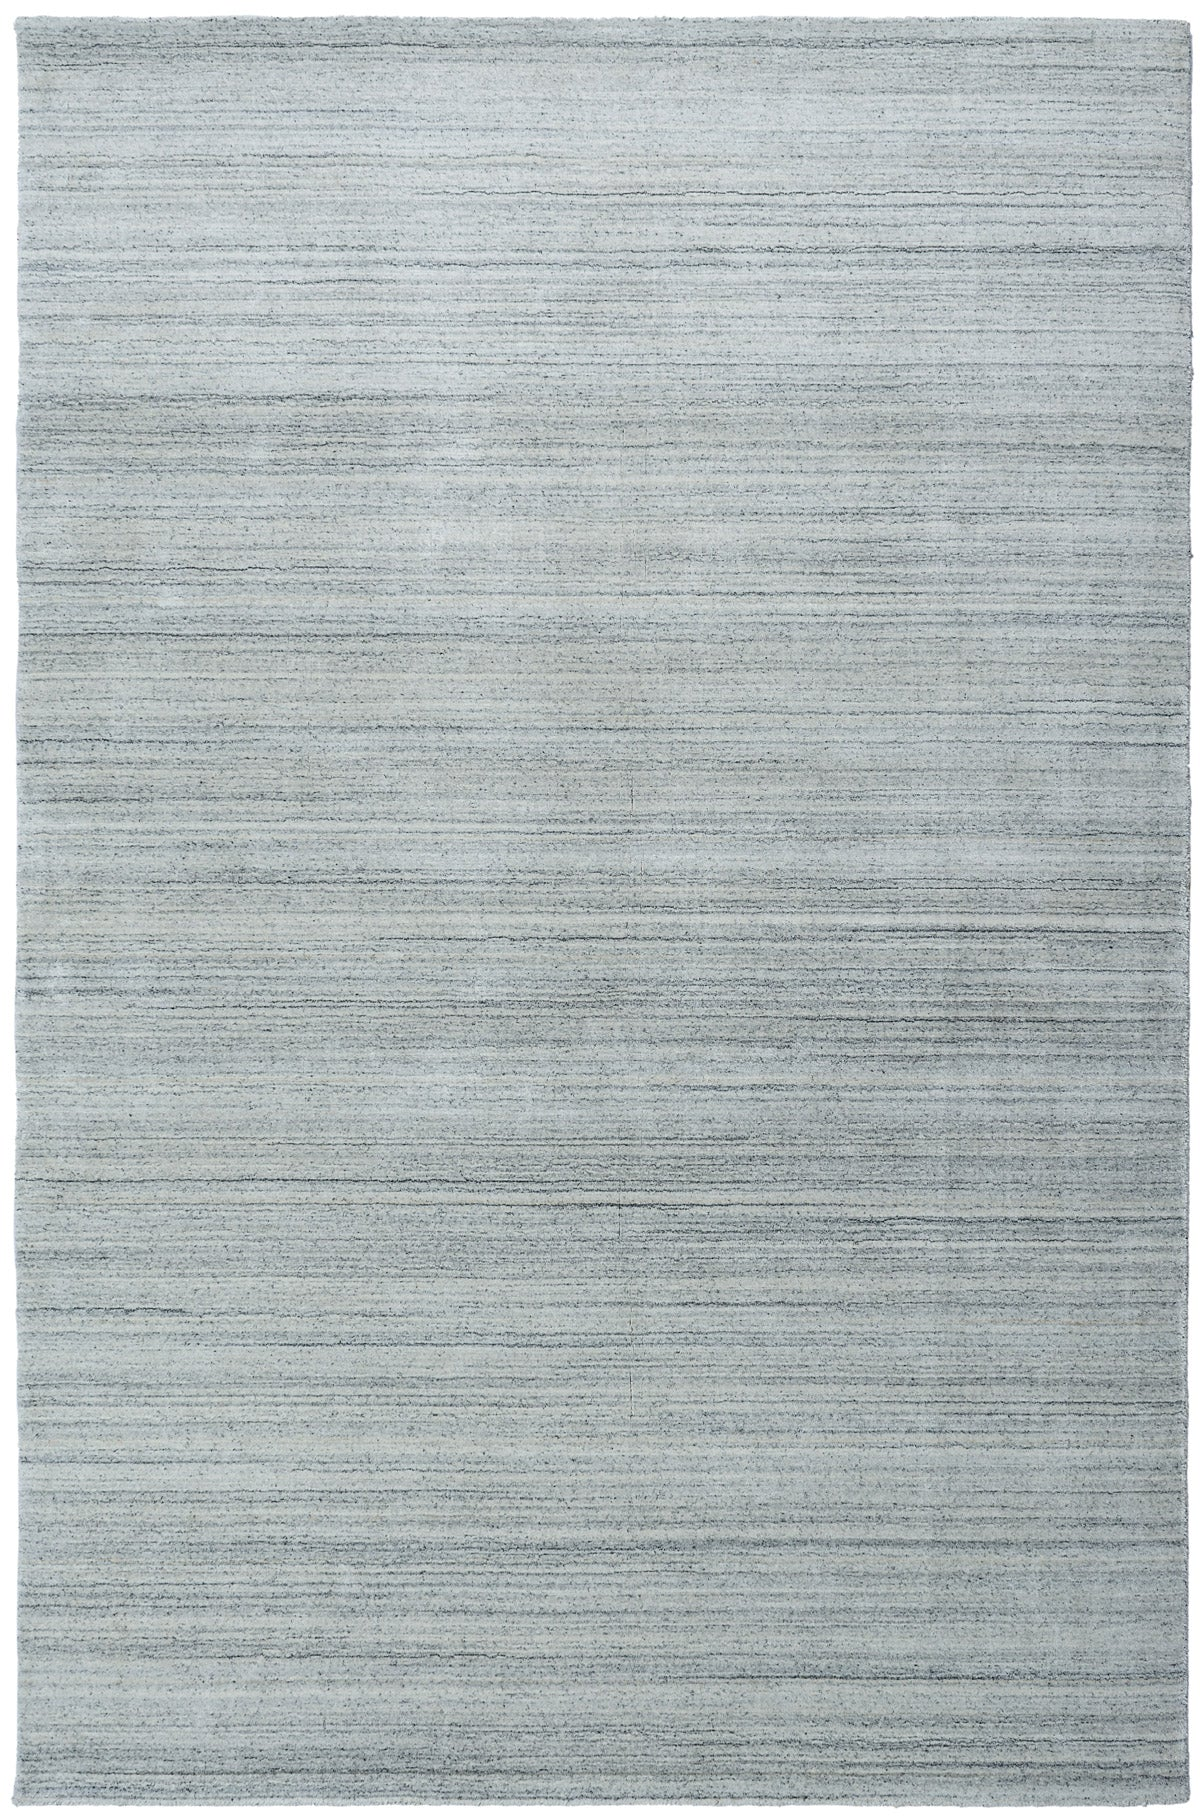 MOONLIGHT Plain Rug - Silver Grey